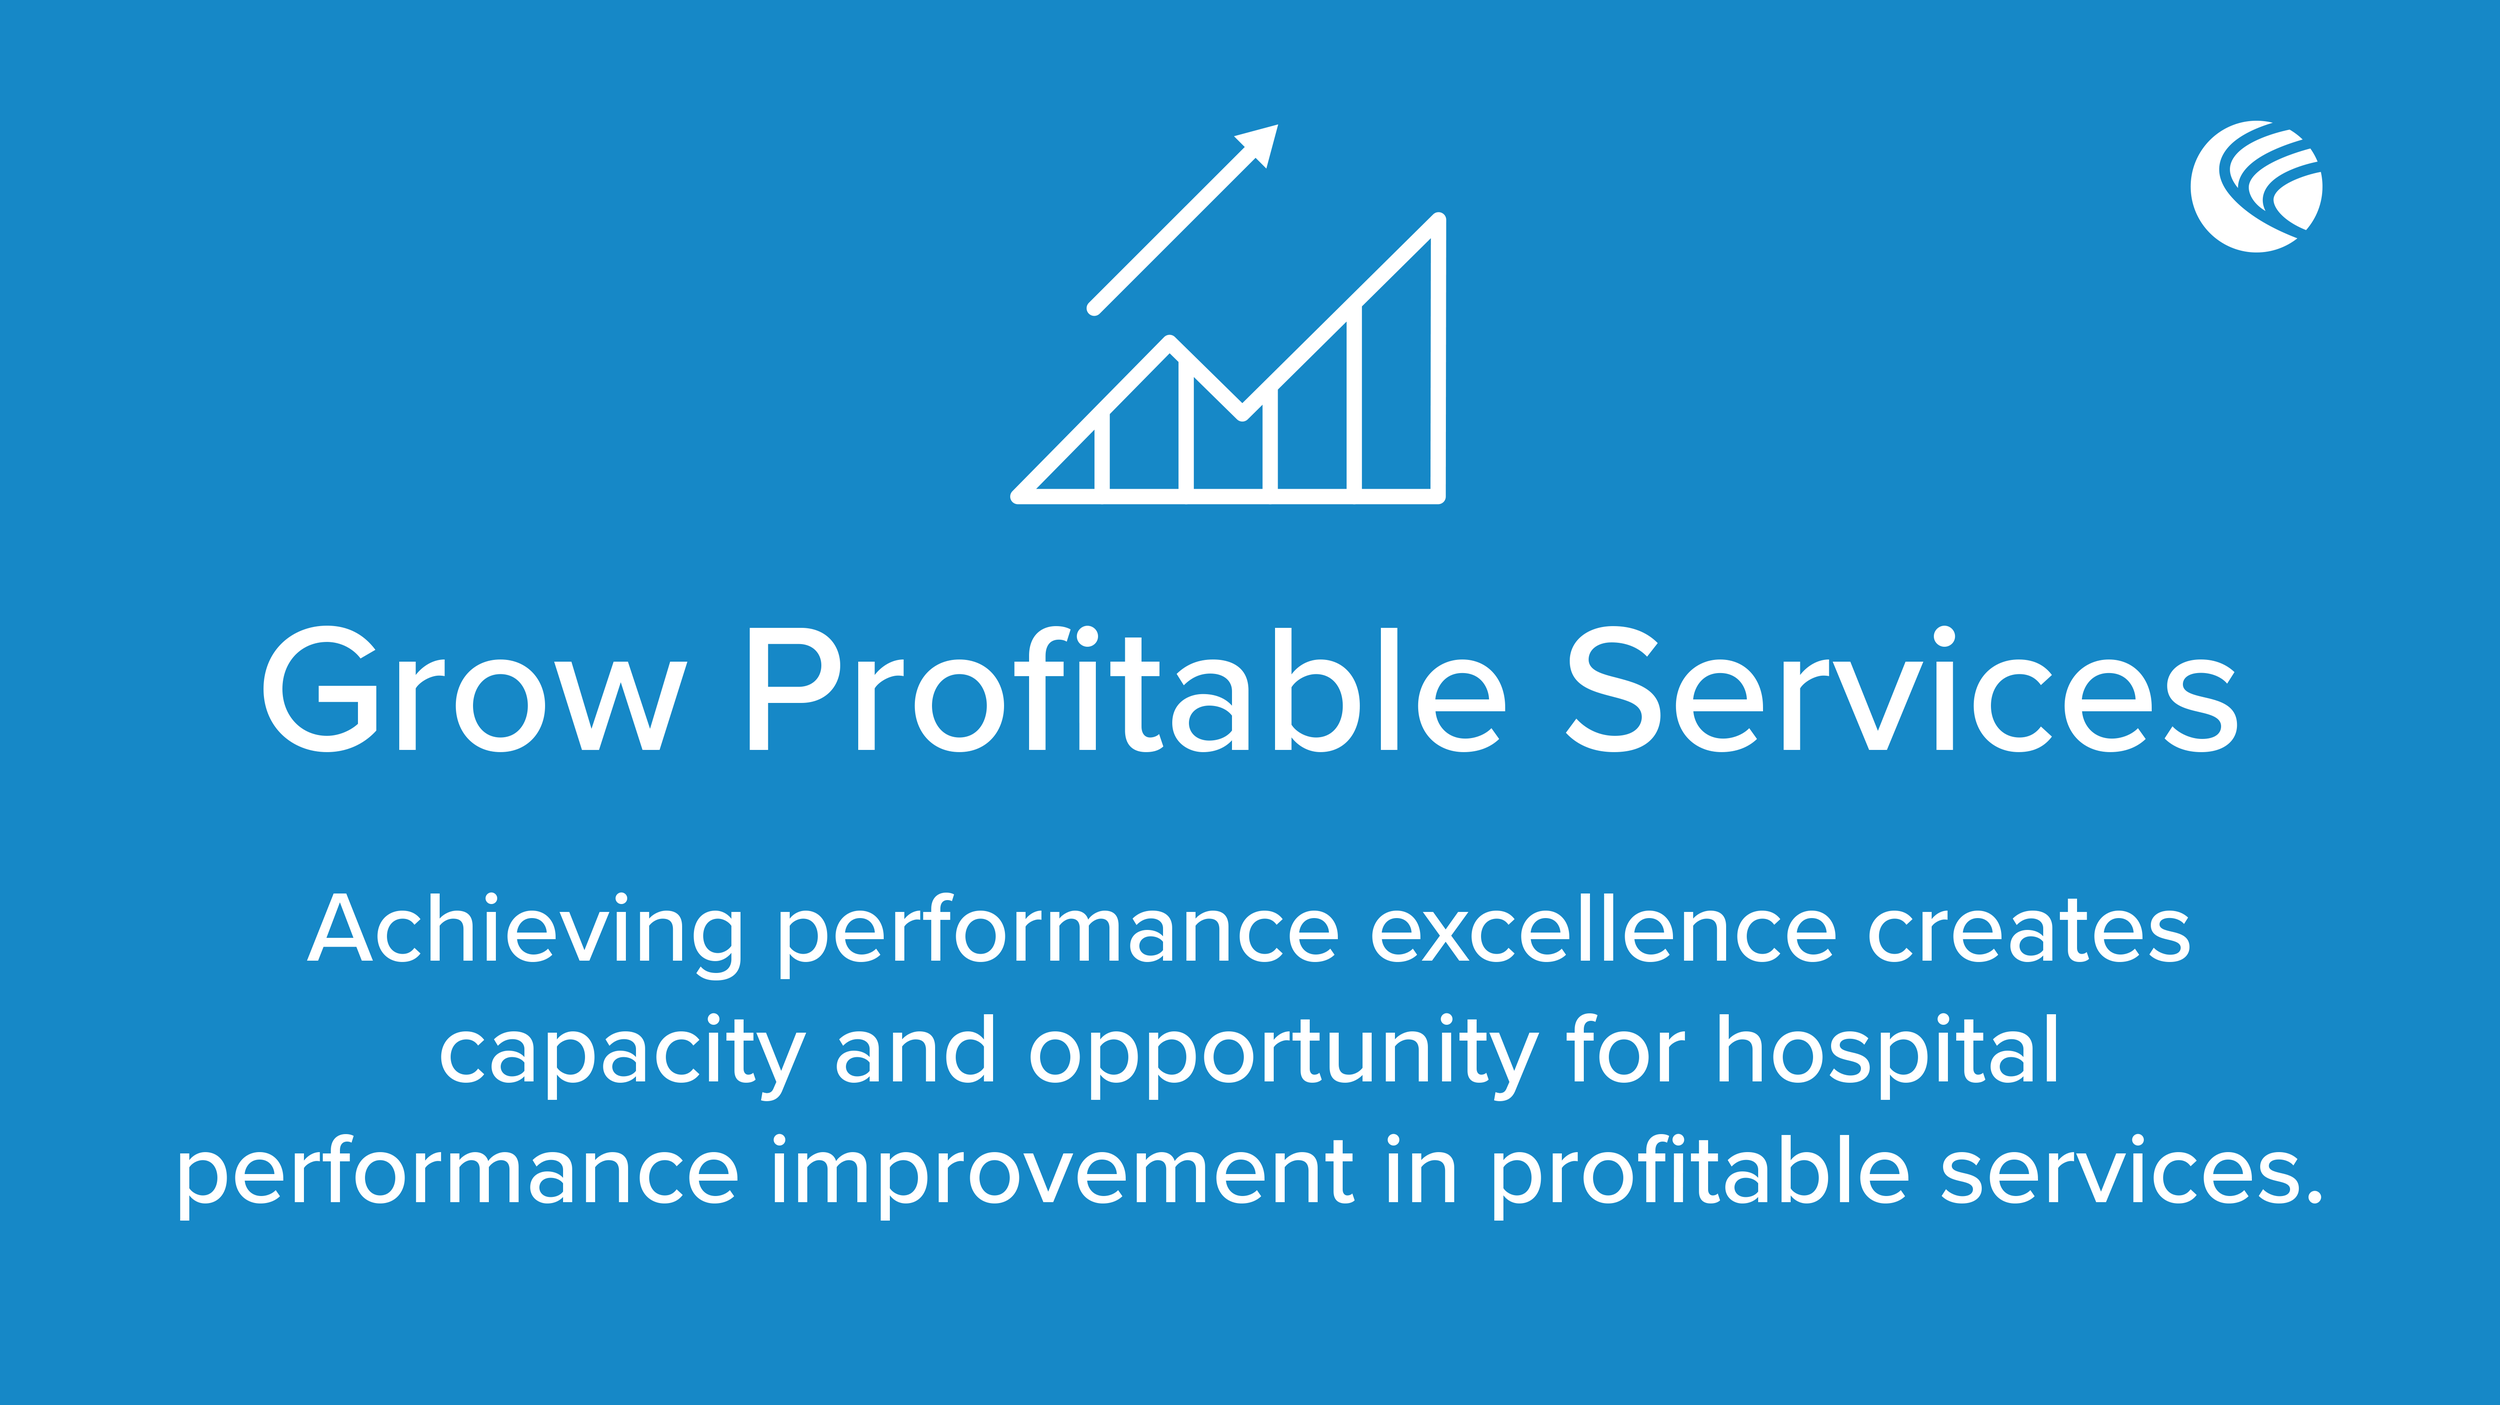 Grow Profitable Services. Achieving performance excellence creates capacity and opportunity for hospital performance improvement in profitable services.